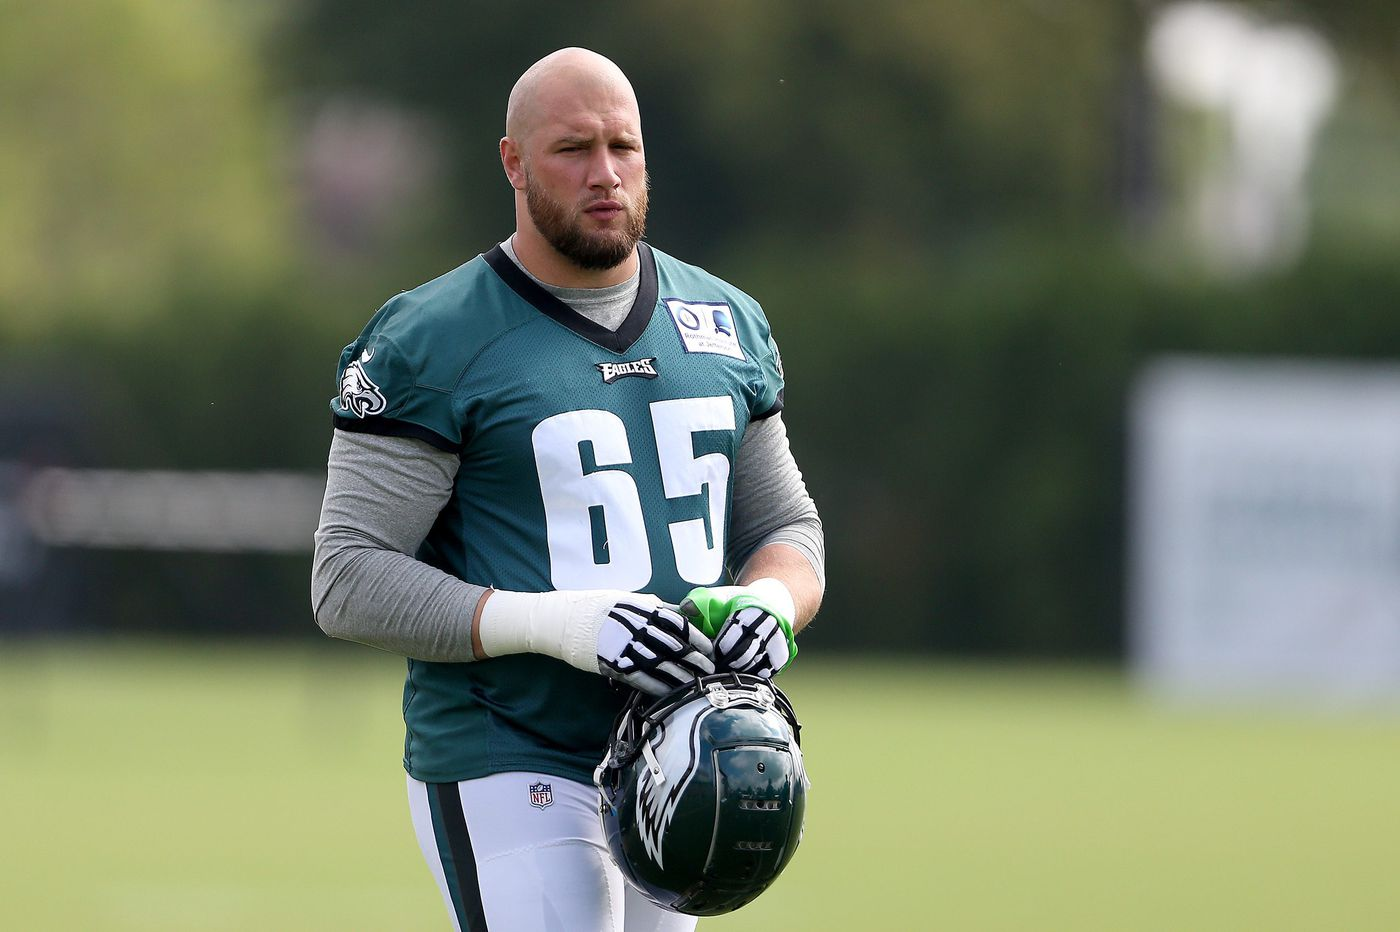 The method, or madness, behind Eagle Lane Johnson's outspokenness